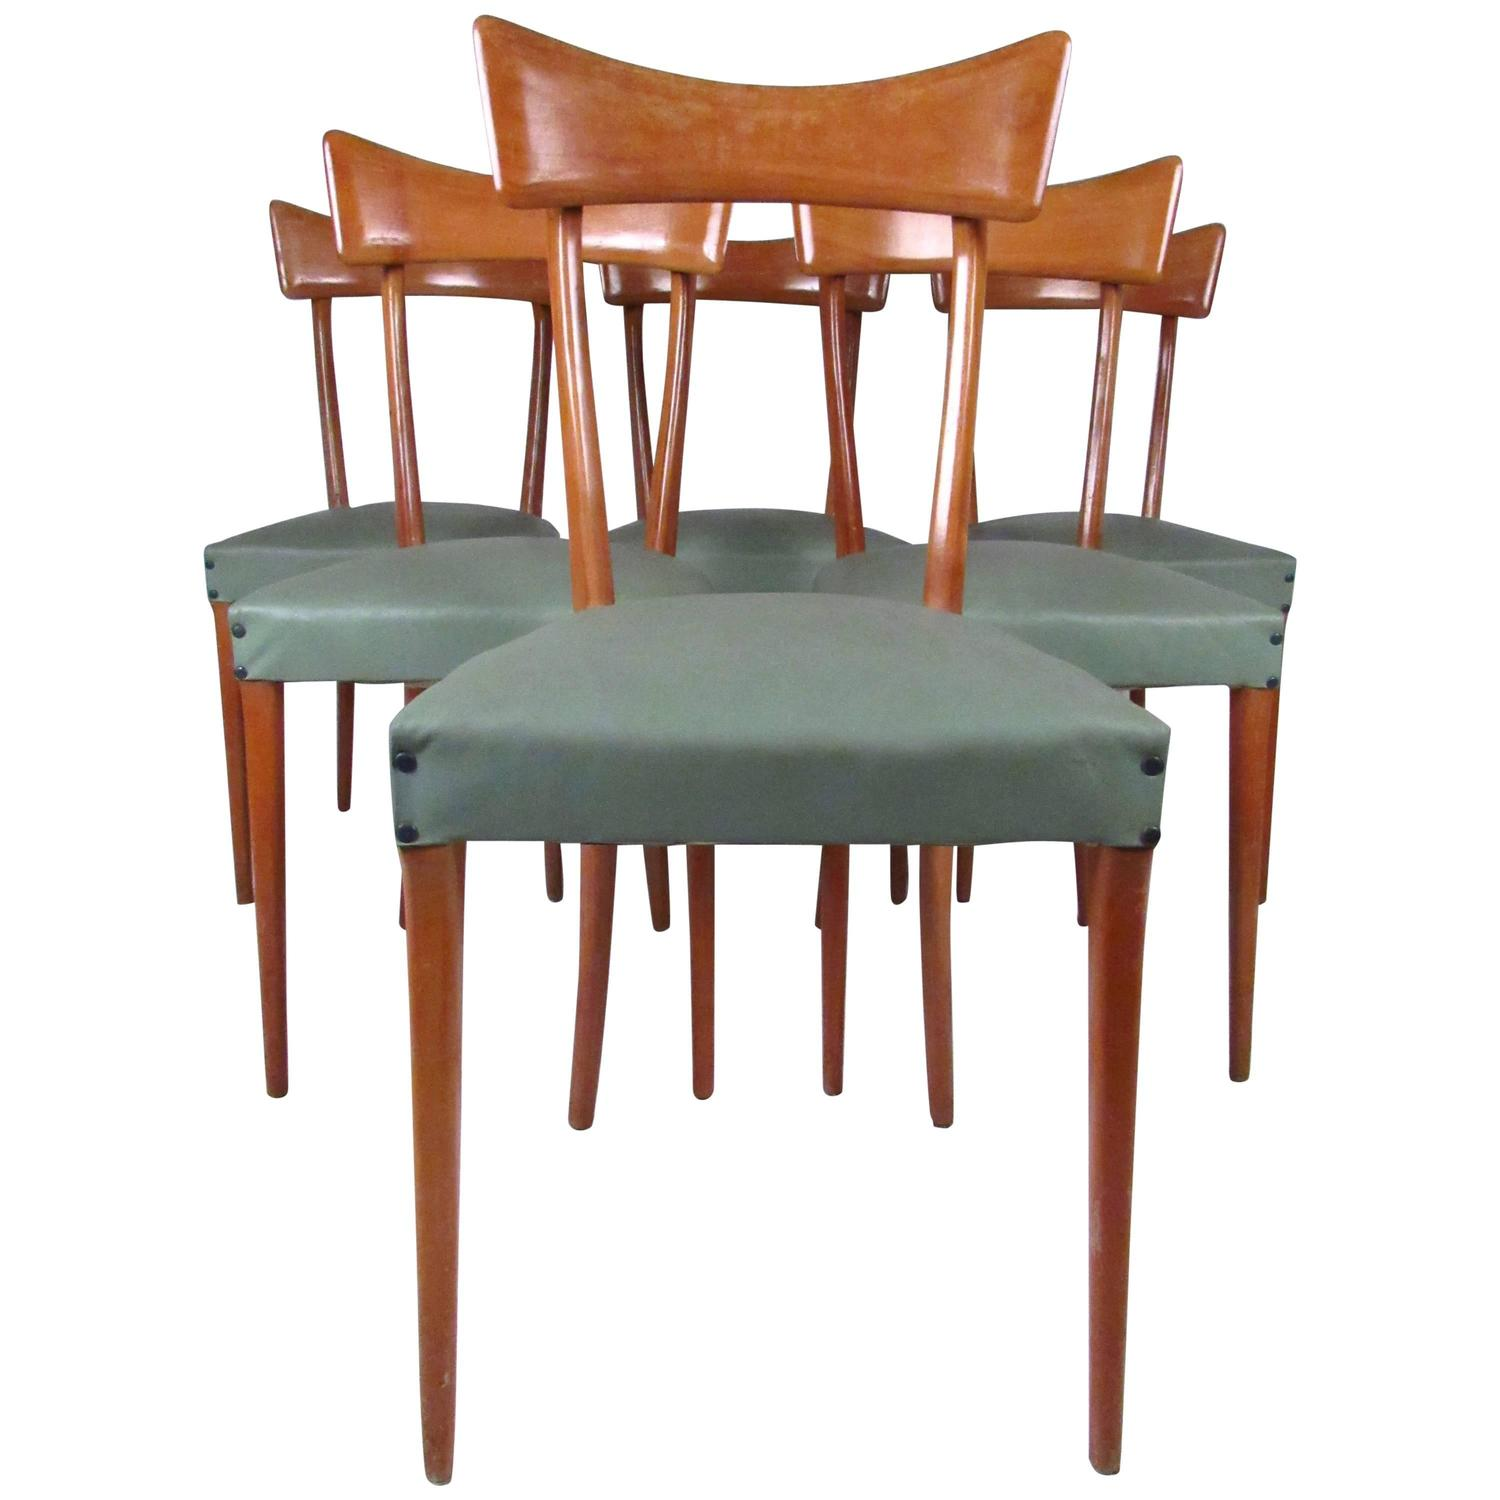 Italian Dining Chairs Midcentury Set Of Ico Parisi Style Italian Dining Chairs